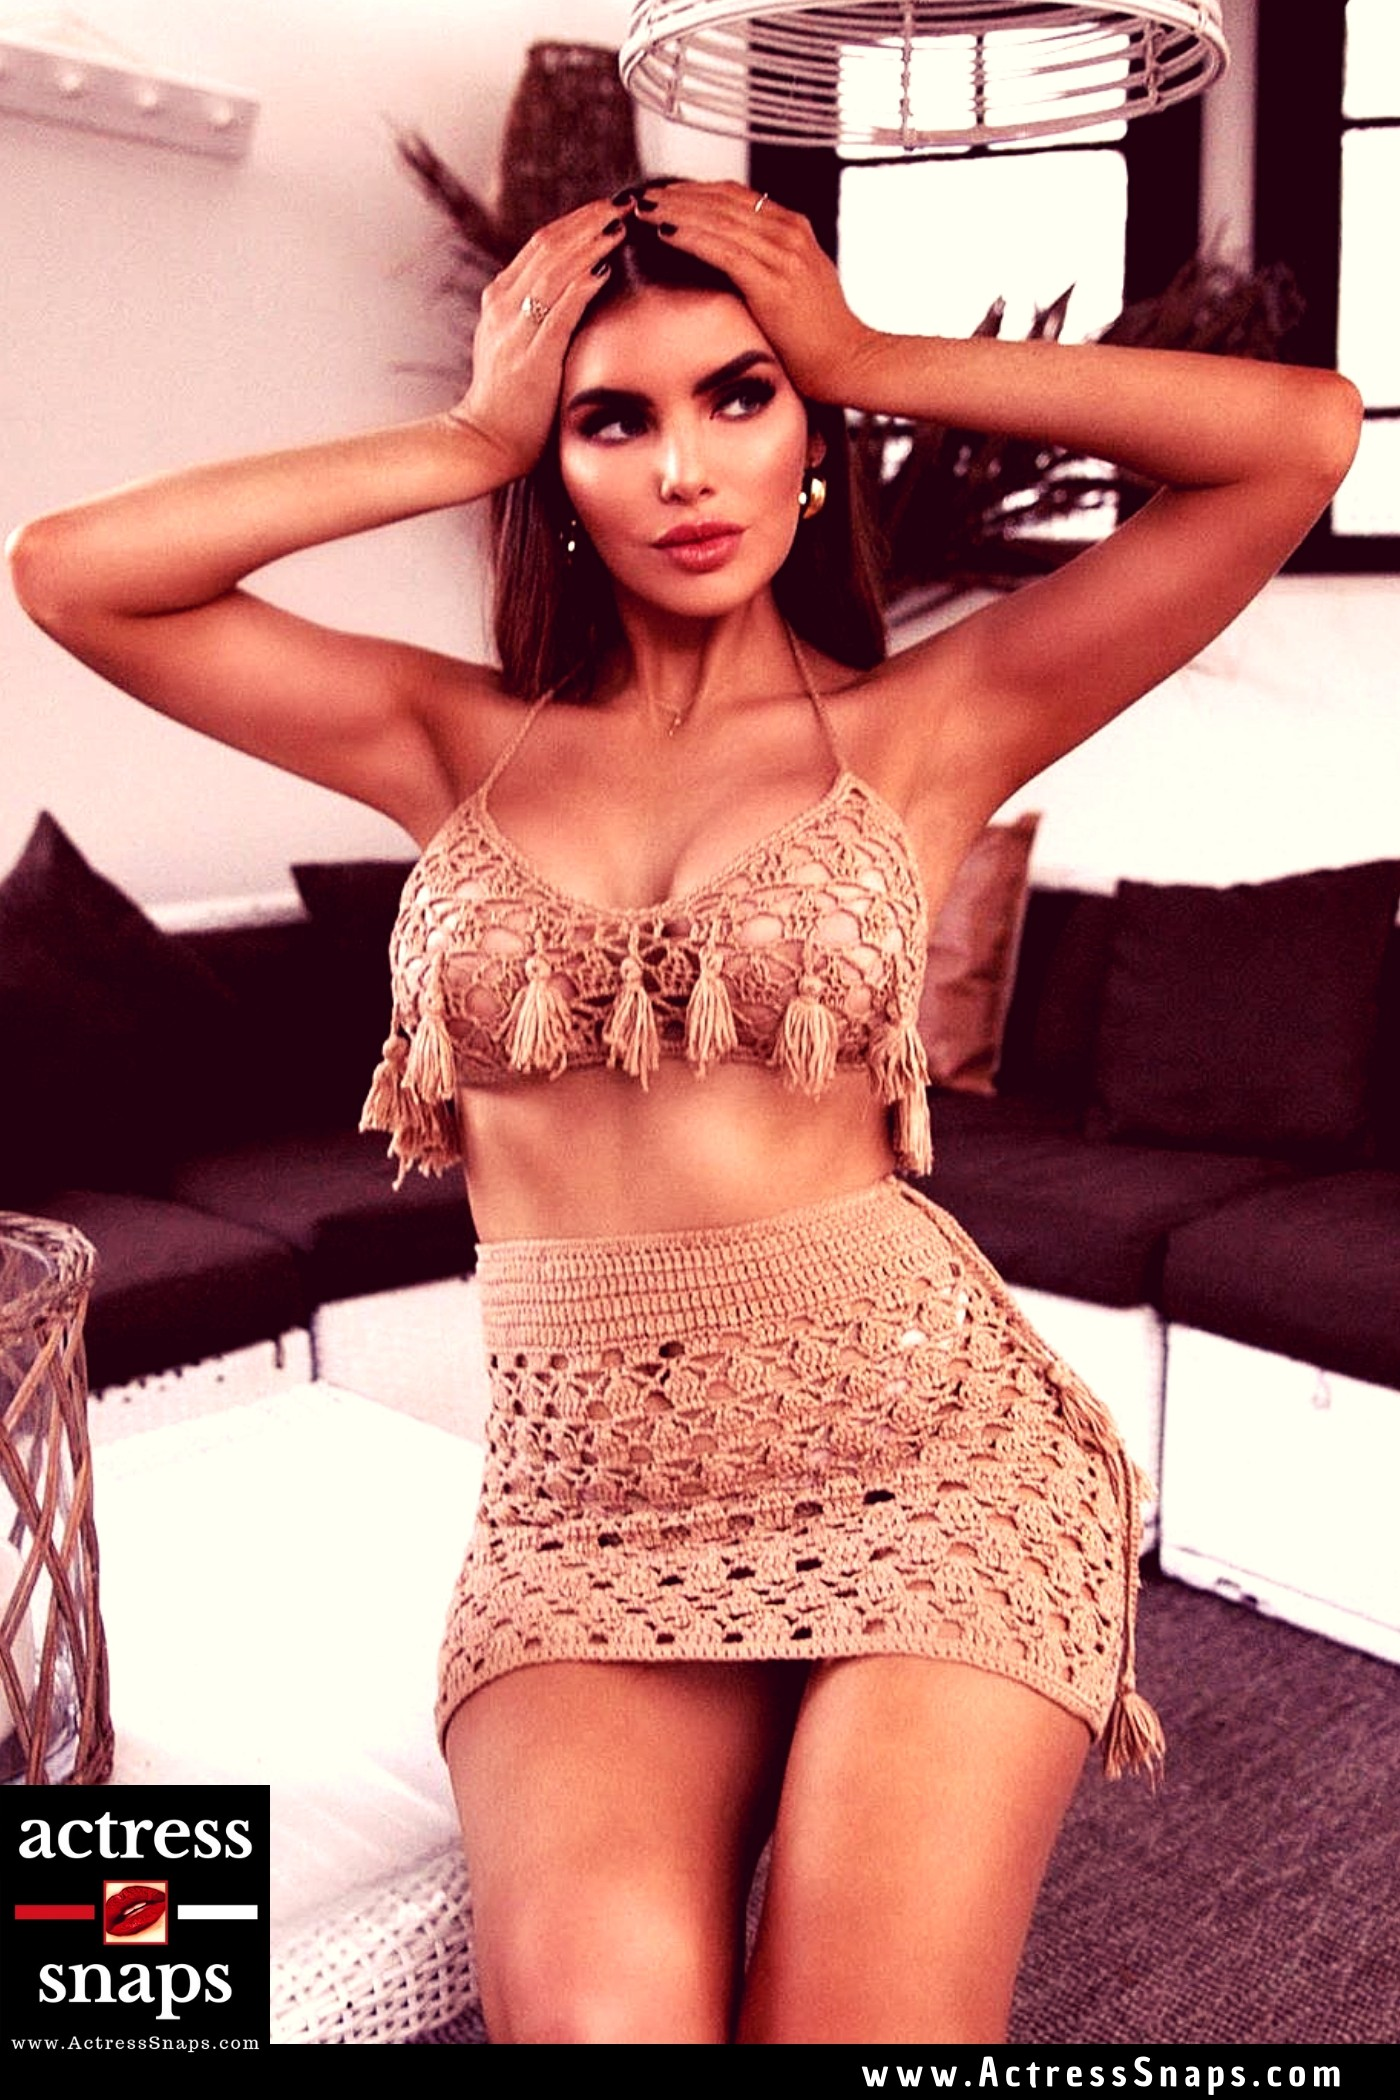 Sexy Nicole Thorne Photos - Sexy Actress Pictures | Hot Actress Pictures - ActressSnaps.com